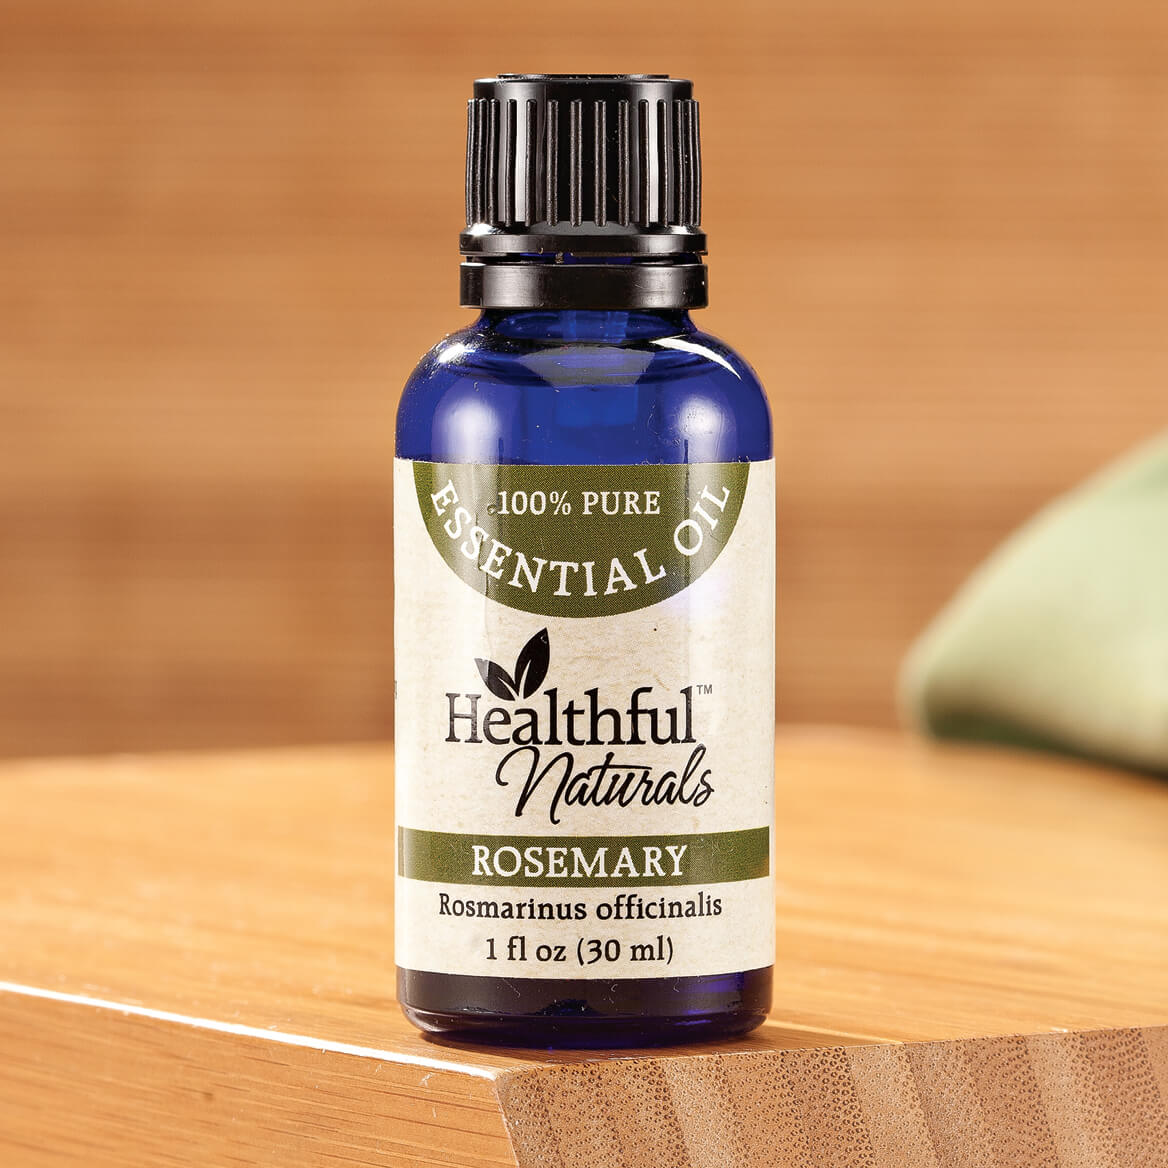 Healthful™ Naturals Rosemary Essential Oil - 30 ml-353458